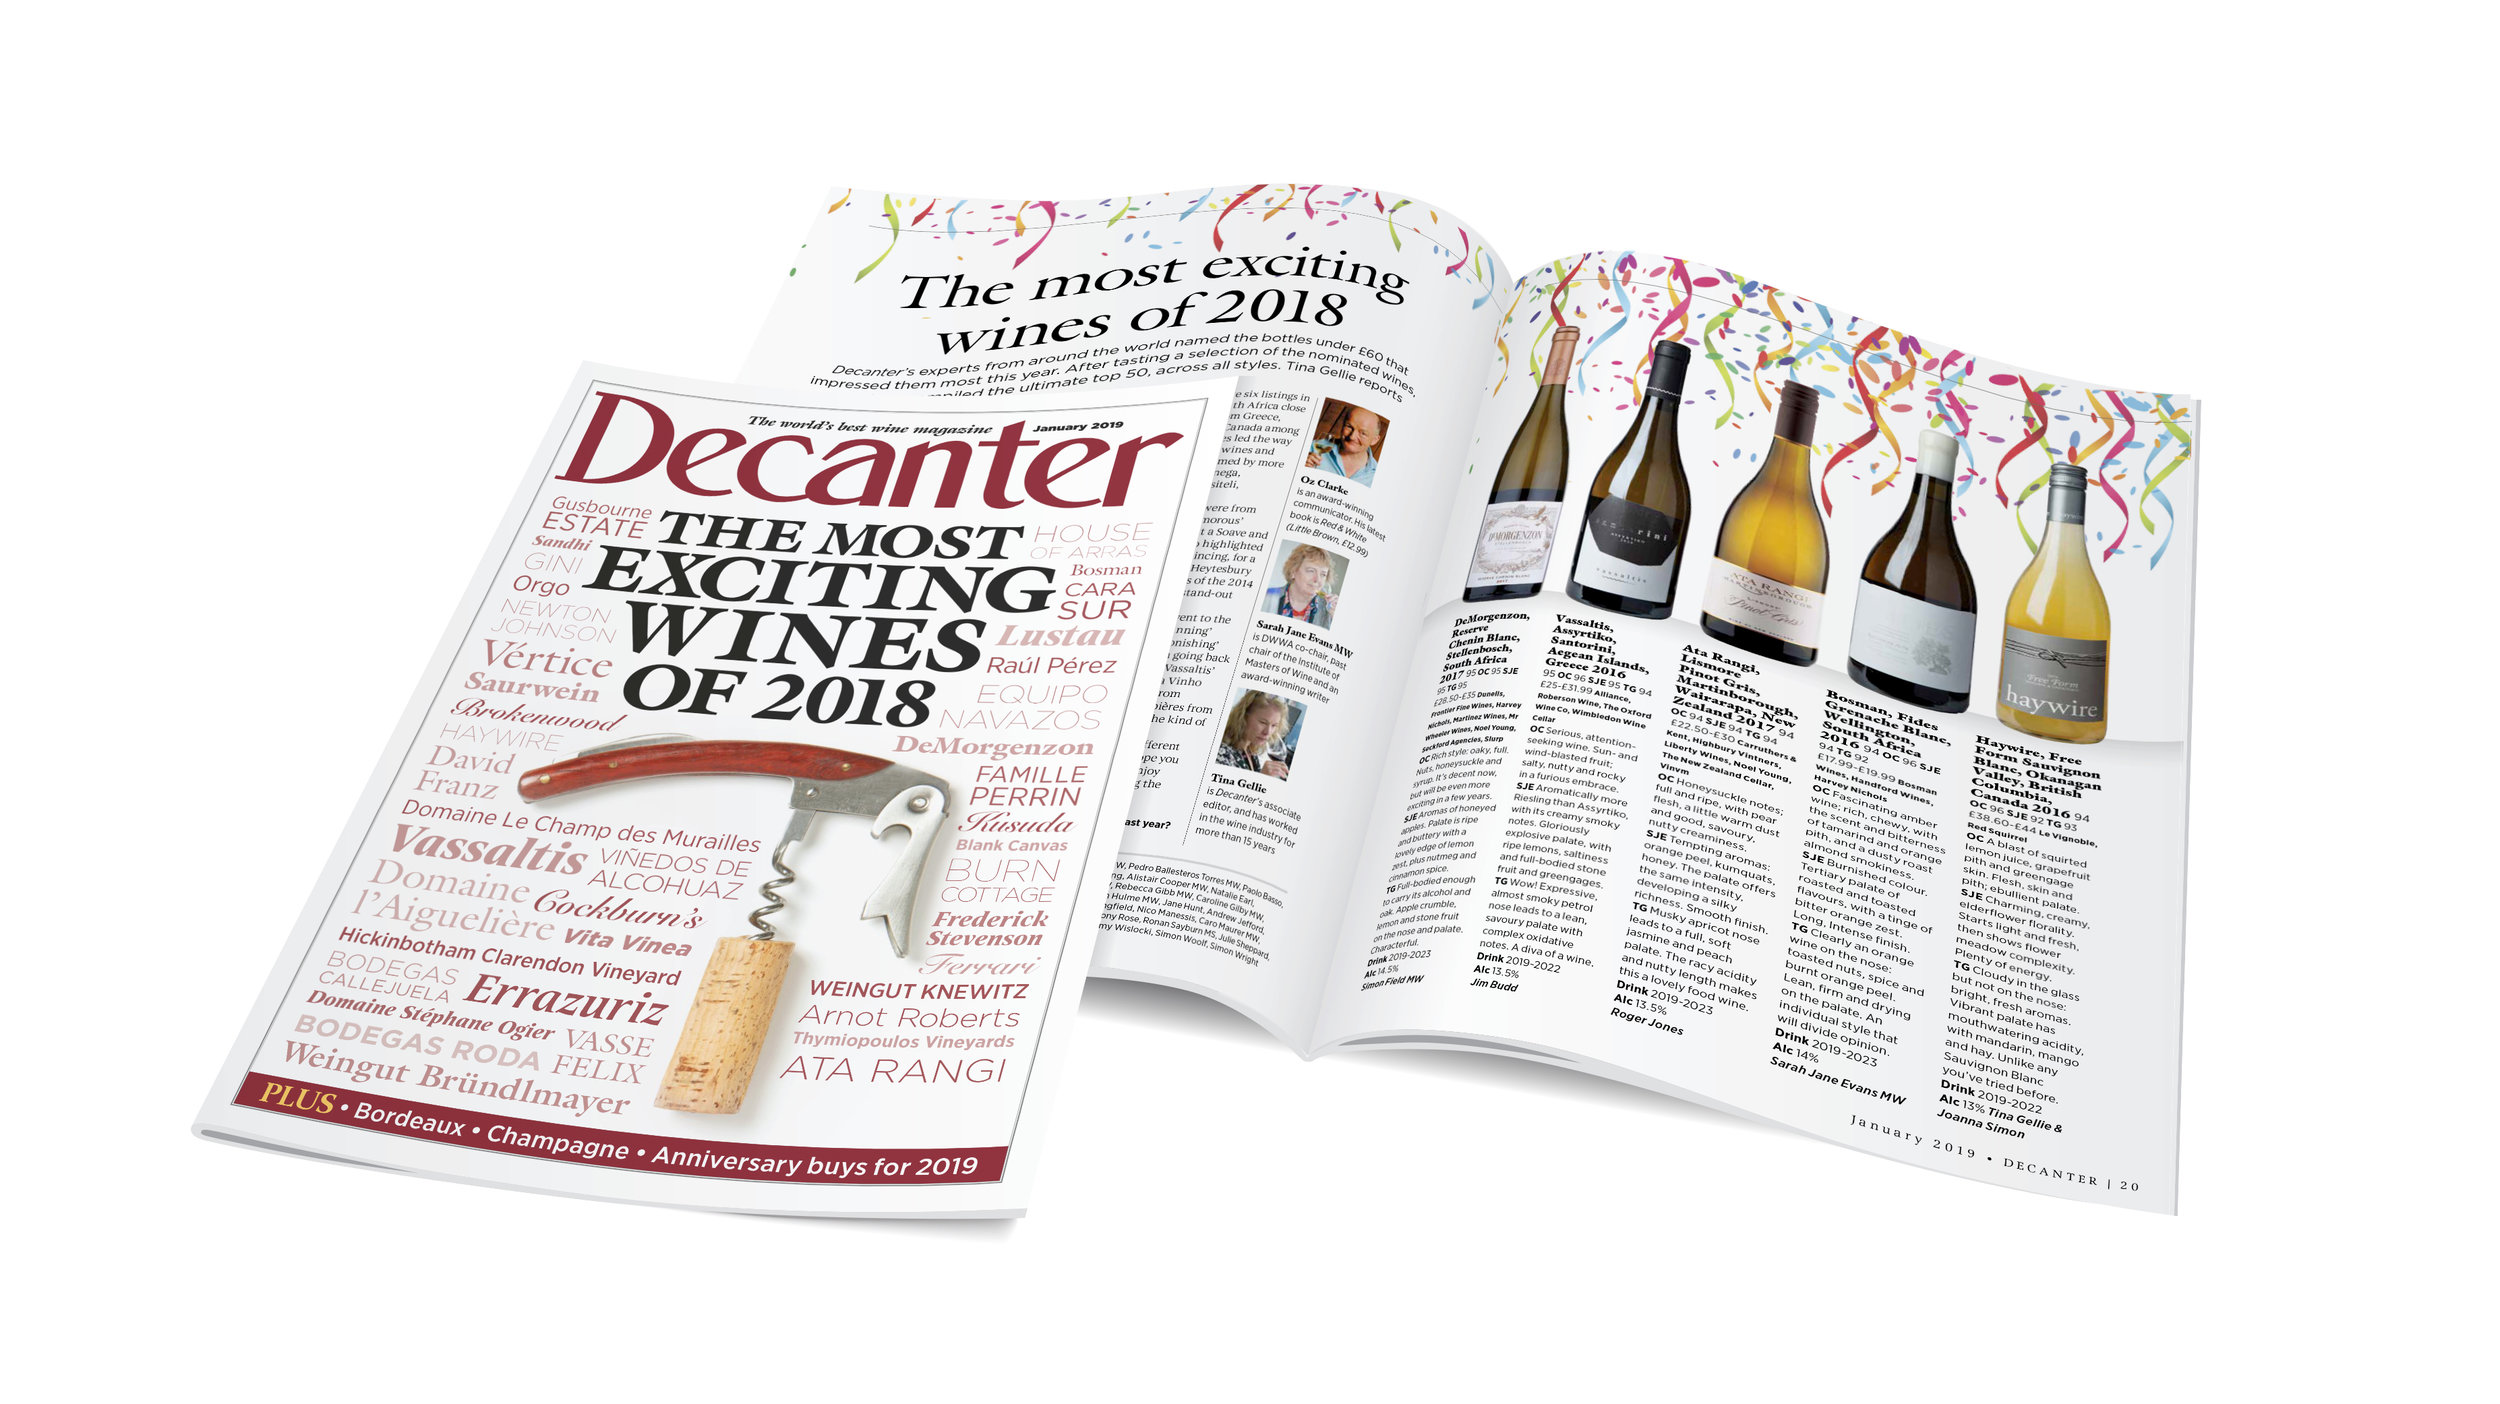 This is the fist time a Canadian winery has made Decanter's Top 10